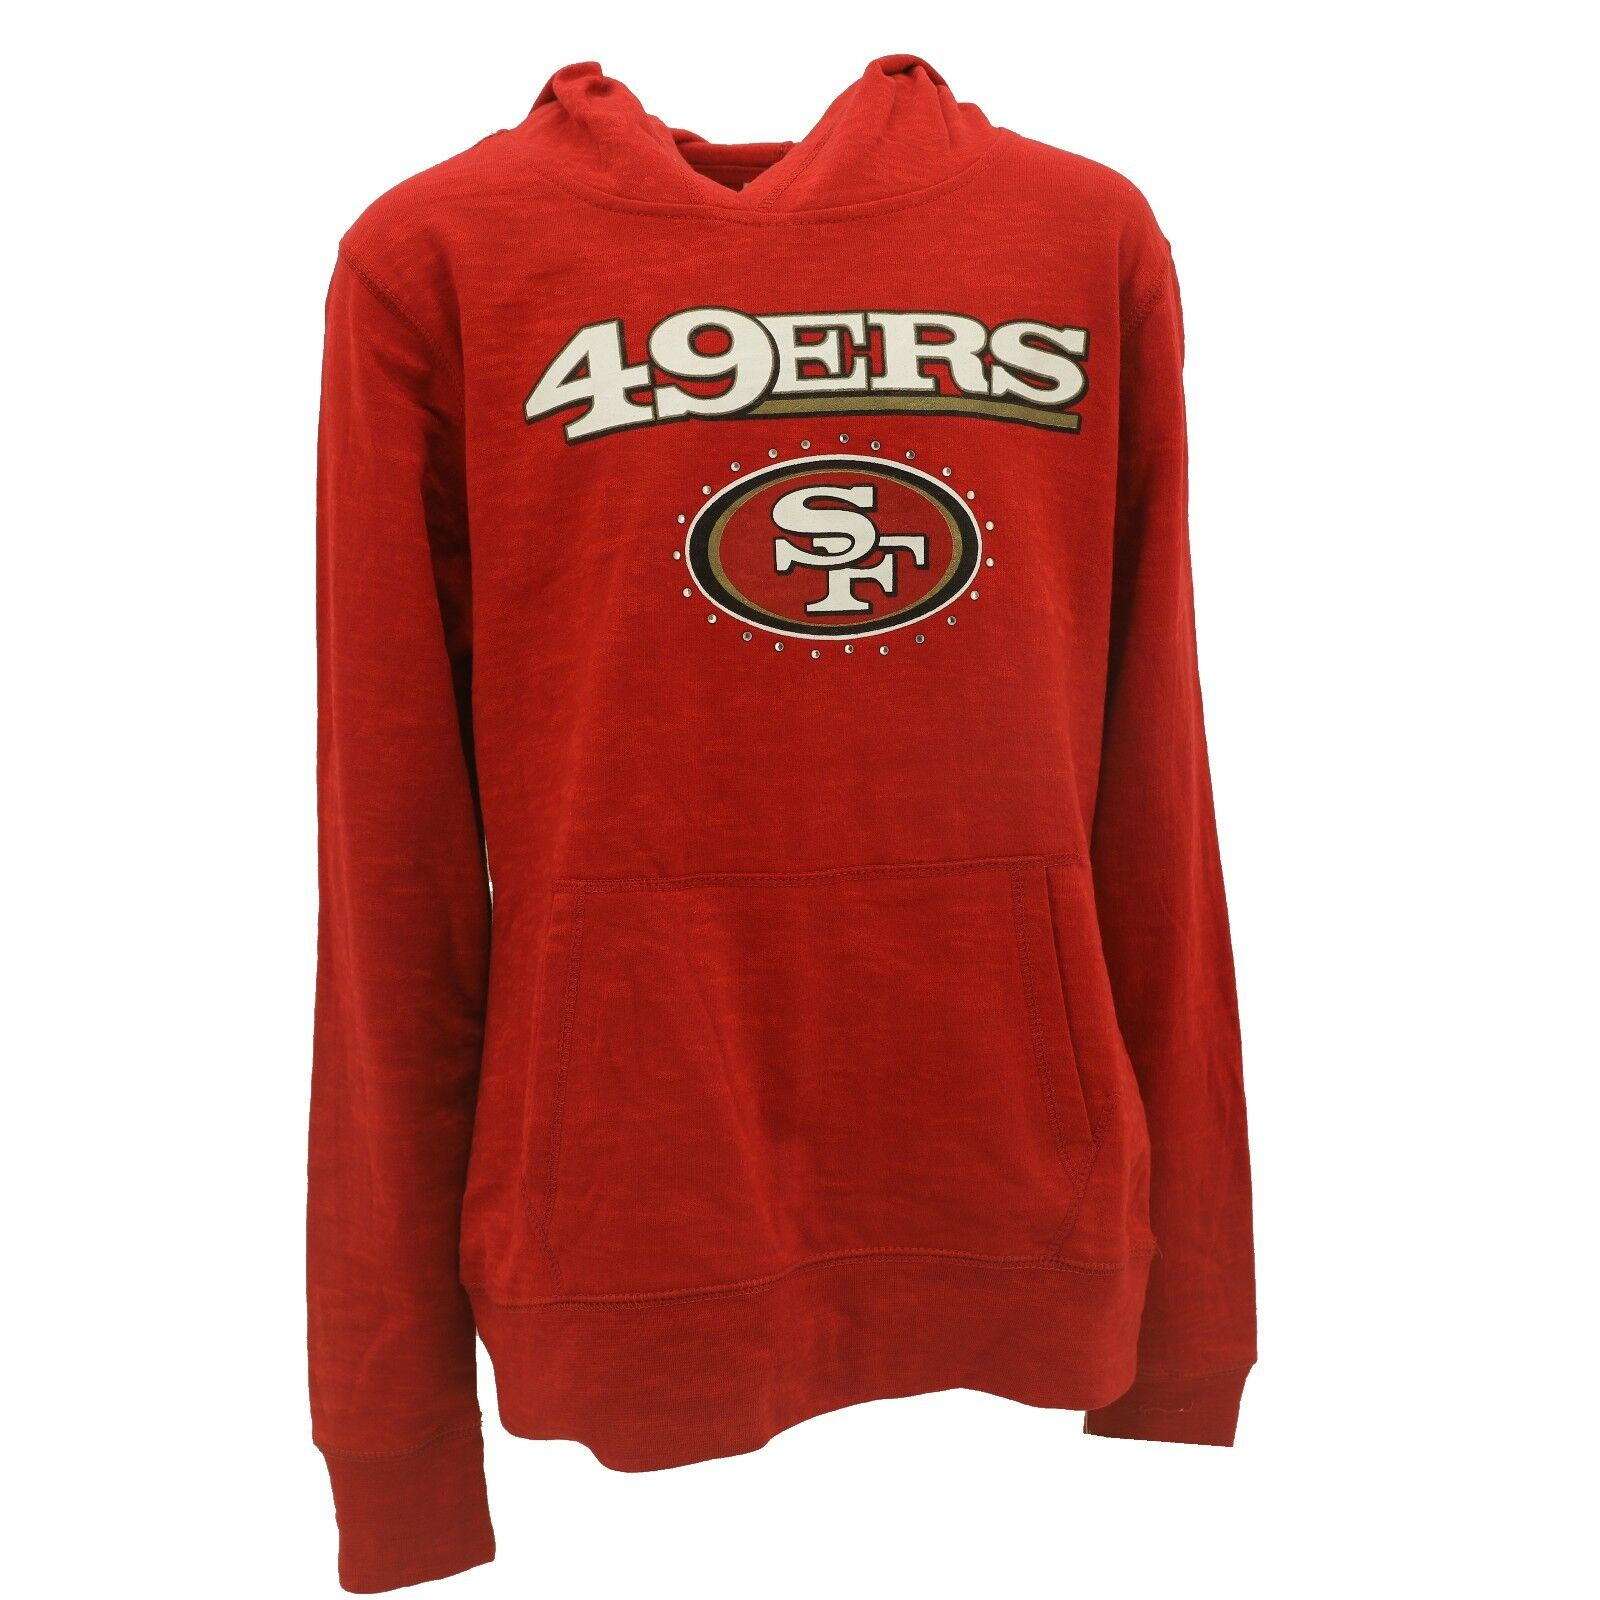 14//16 Performance Hooded Sweatshirt San Francisco 49ers Team Apparel Youth Size Large